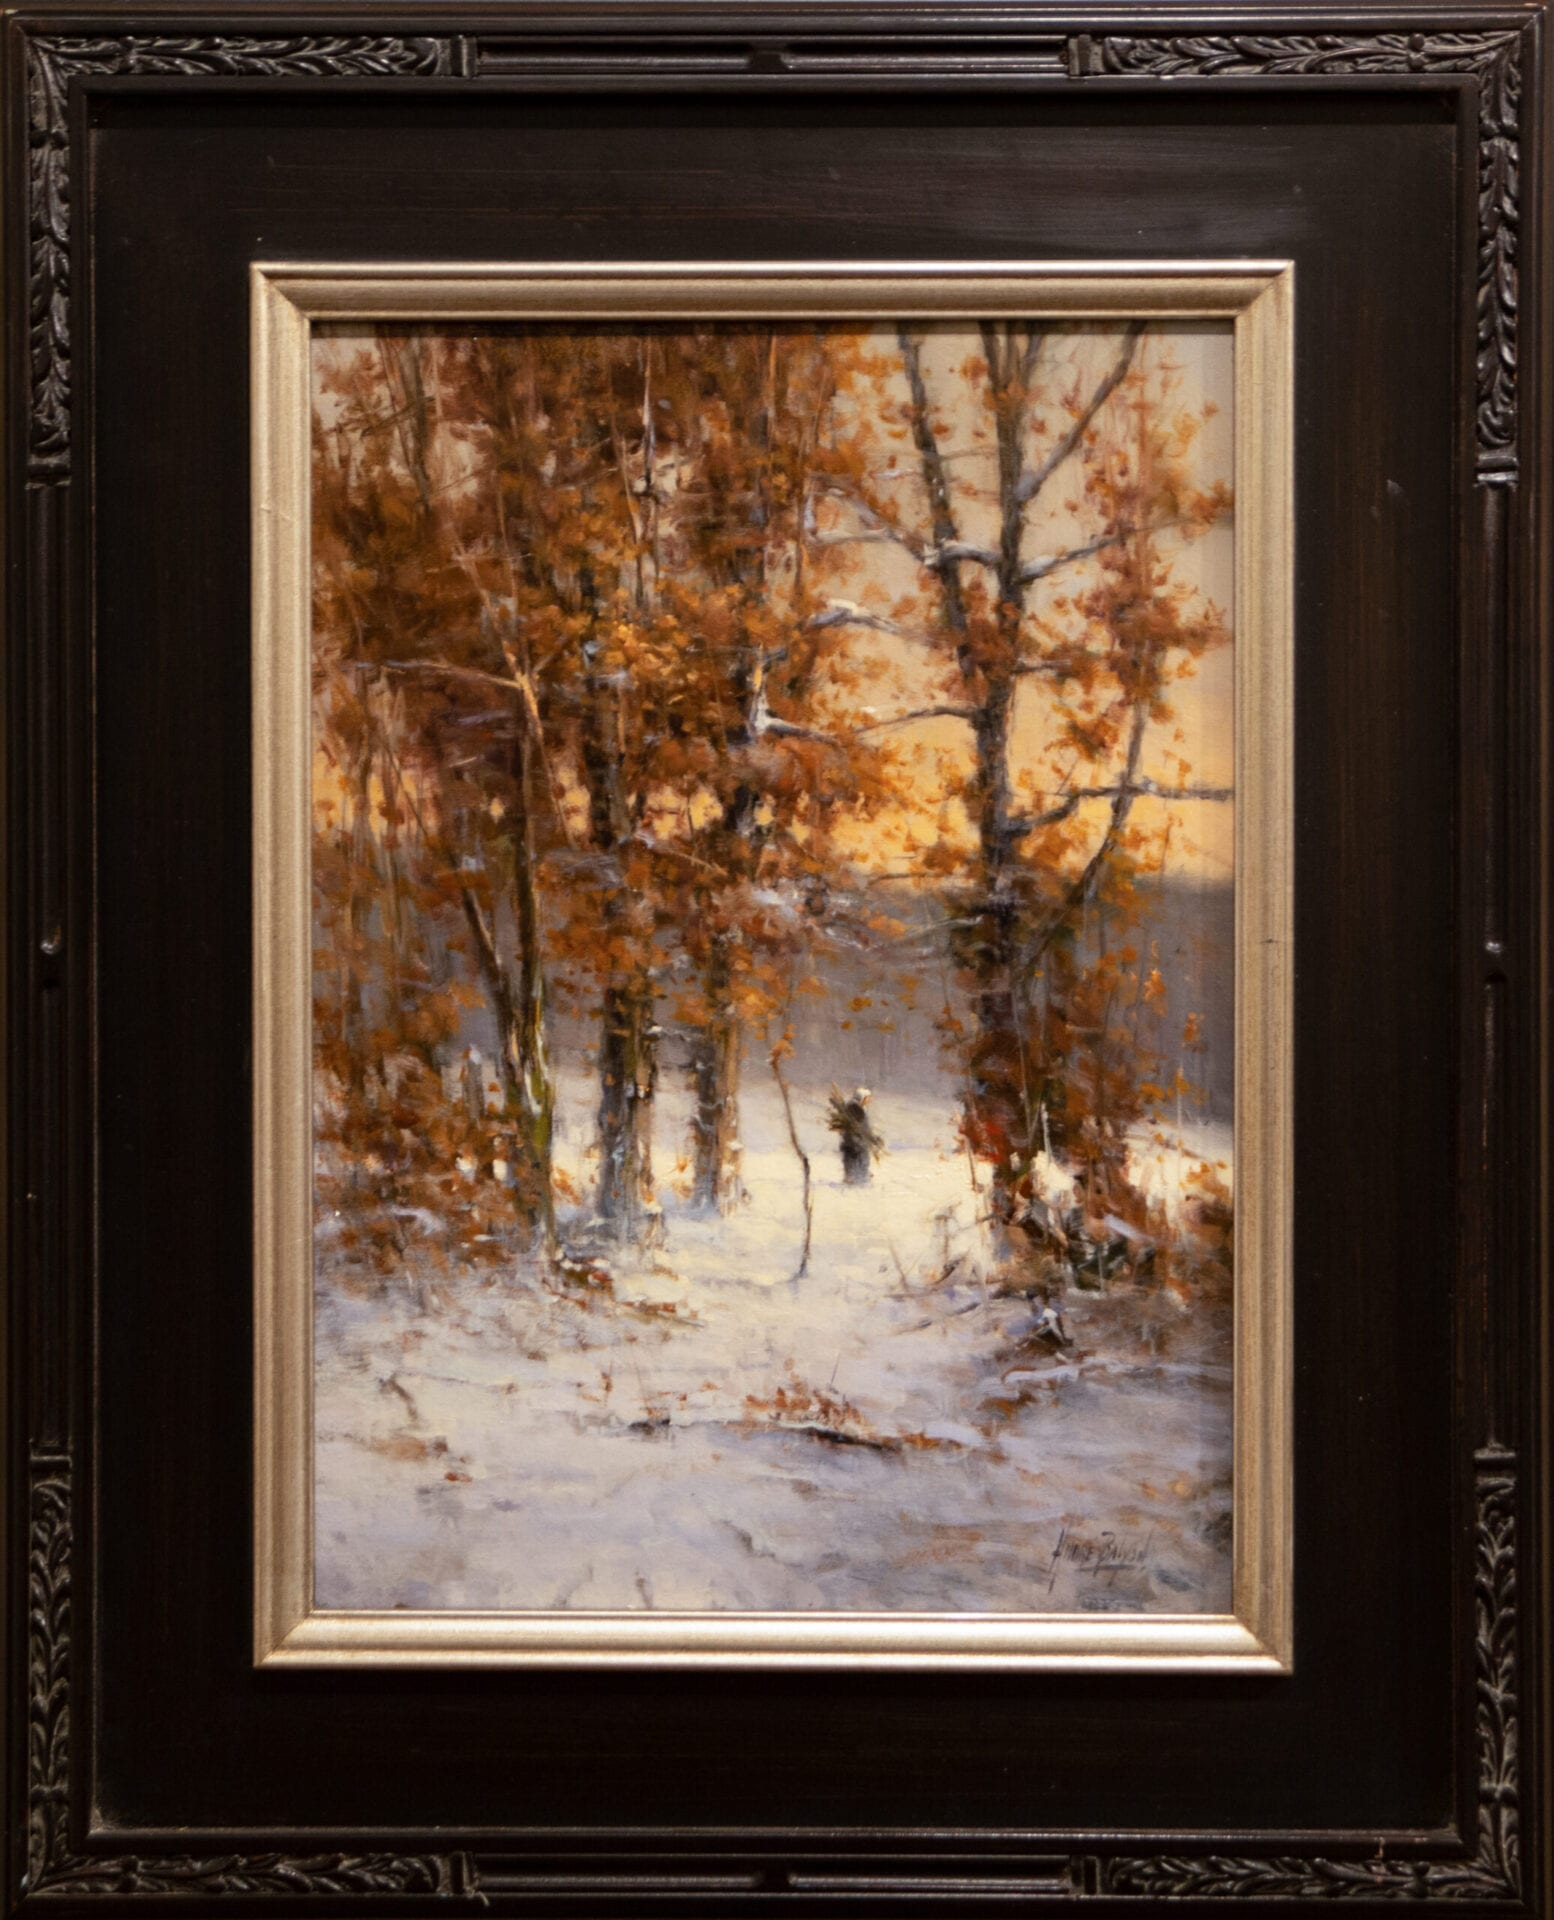 In a Winter's Forest | Andre Balyon | Oil on Canvas | 19 x 14""